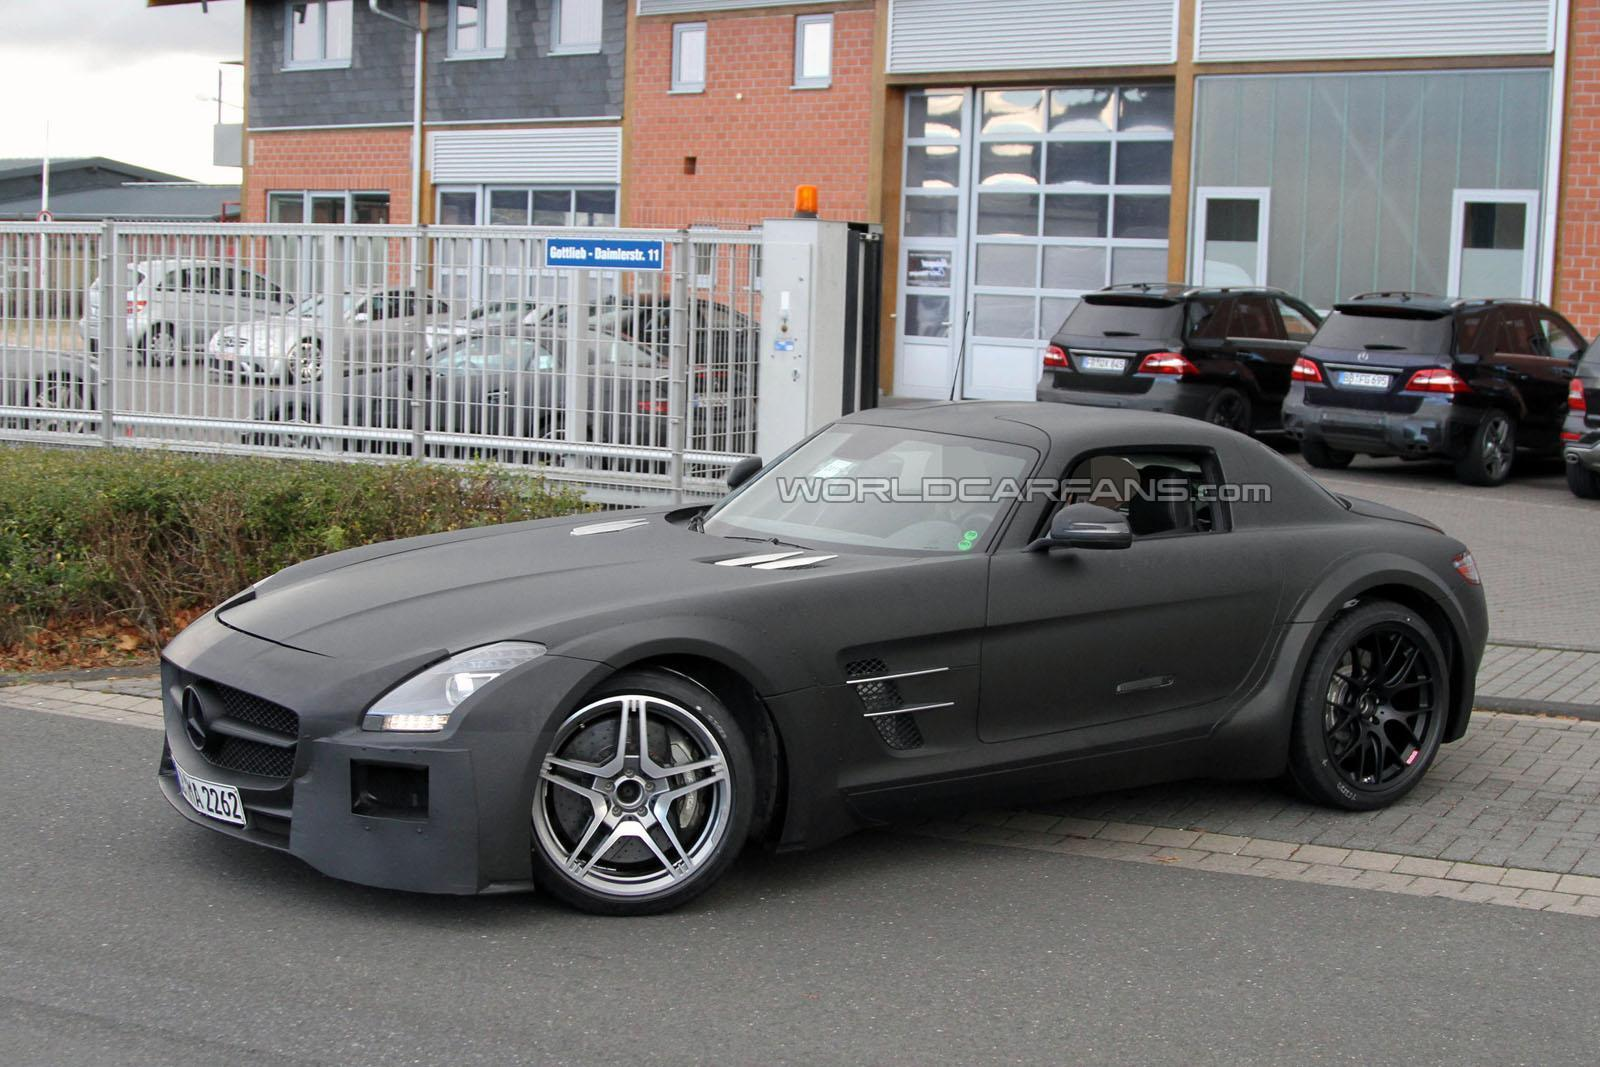 2019 Mercedes Benz SLS AMG US Version photo - 3